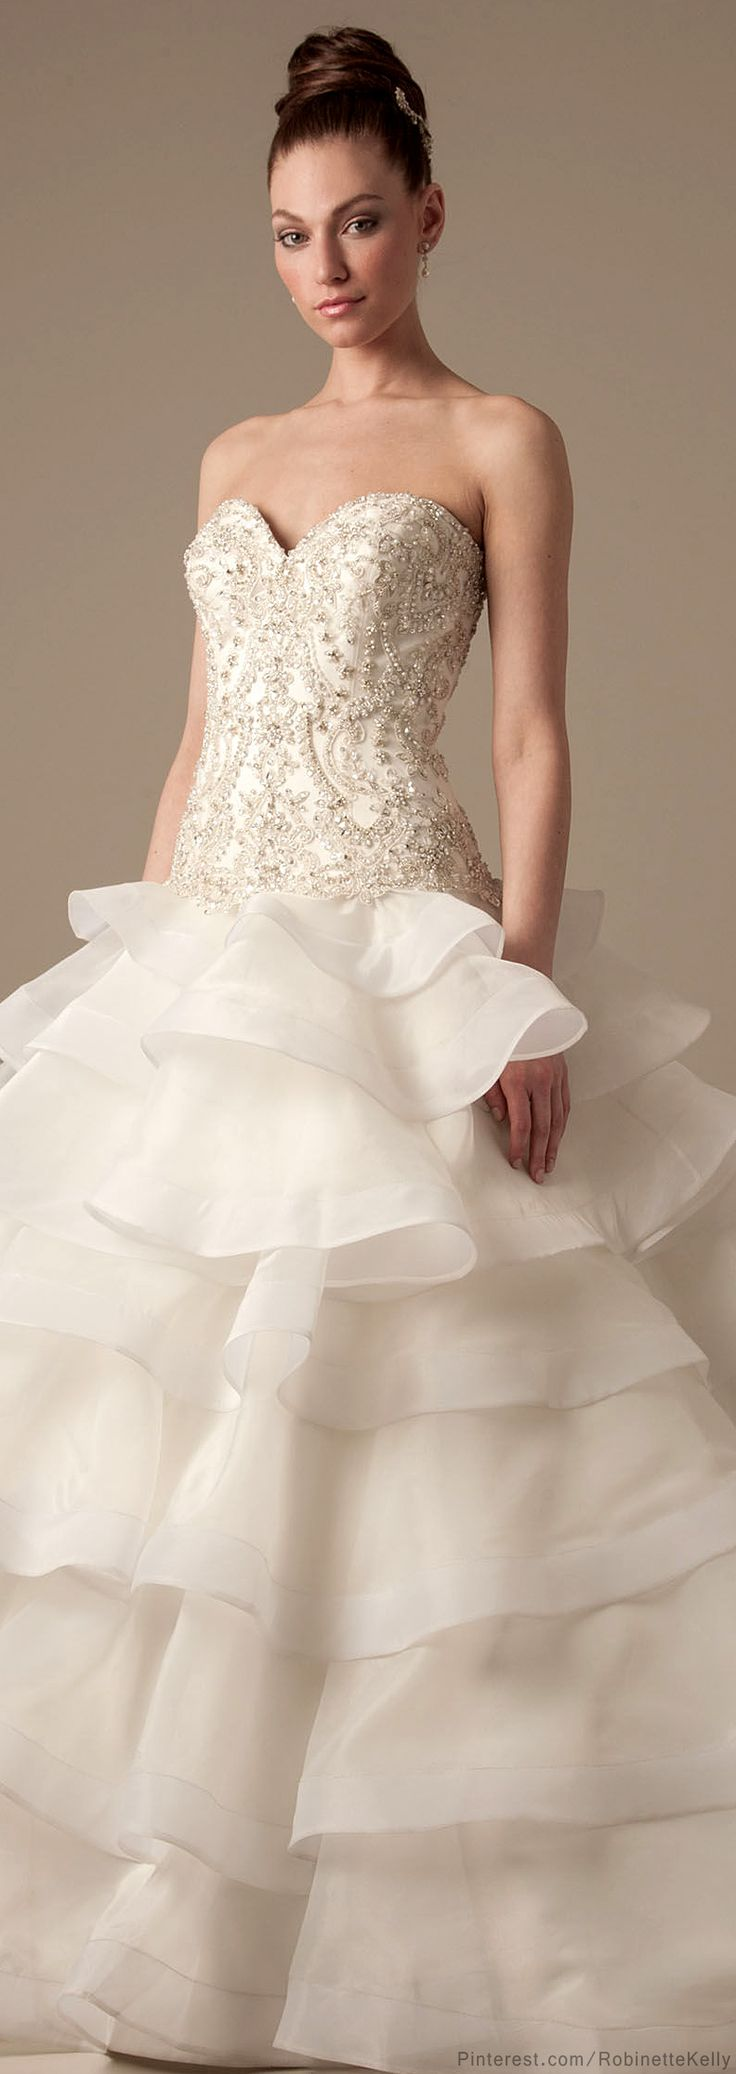 38 best Dennis Basso gowns images on Pinterest | Wedding frocks ...